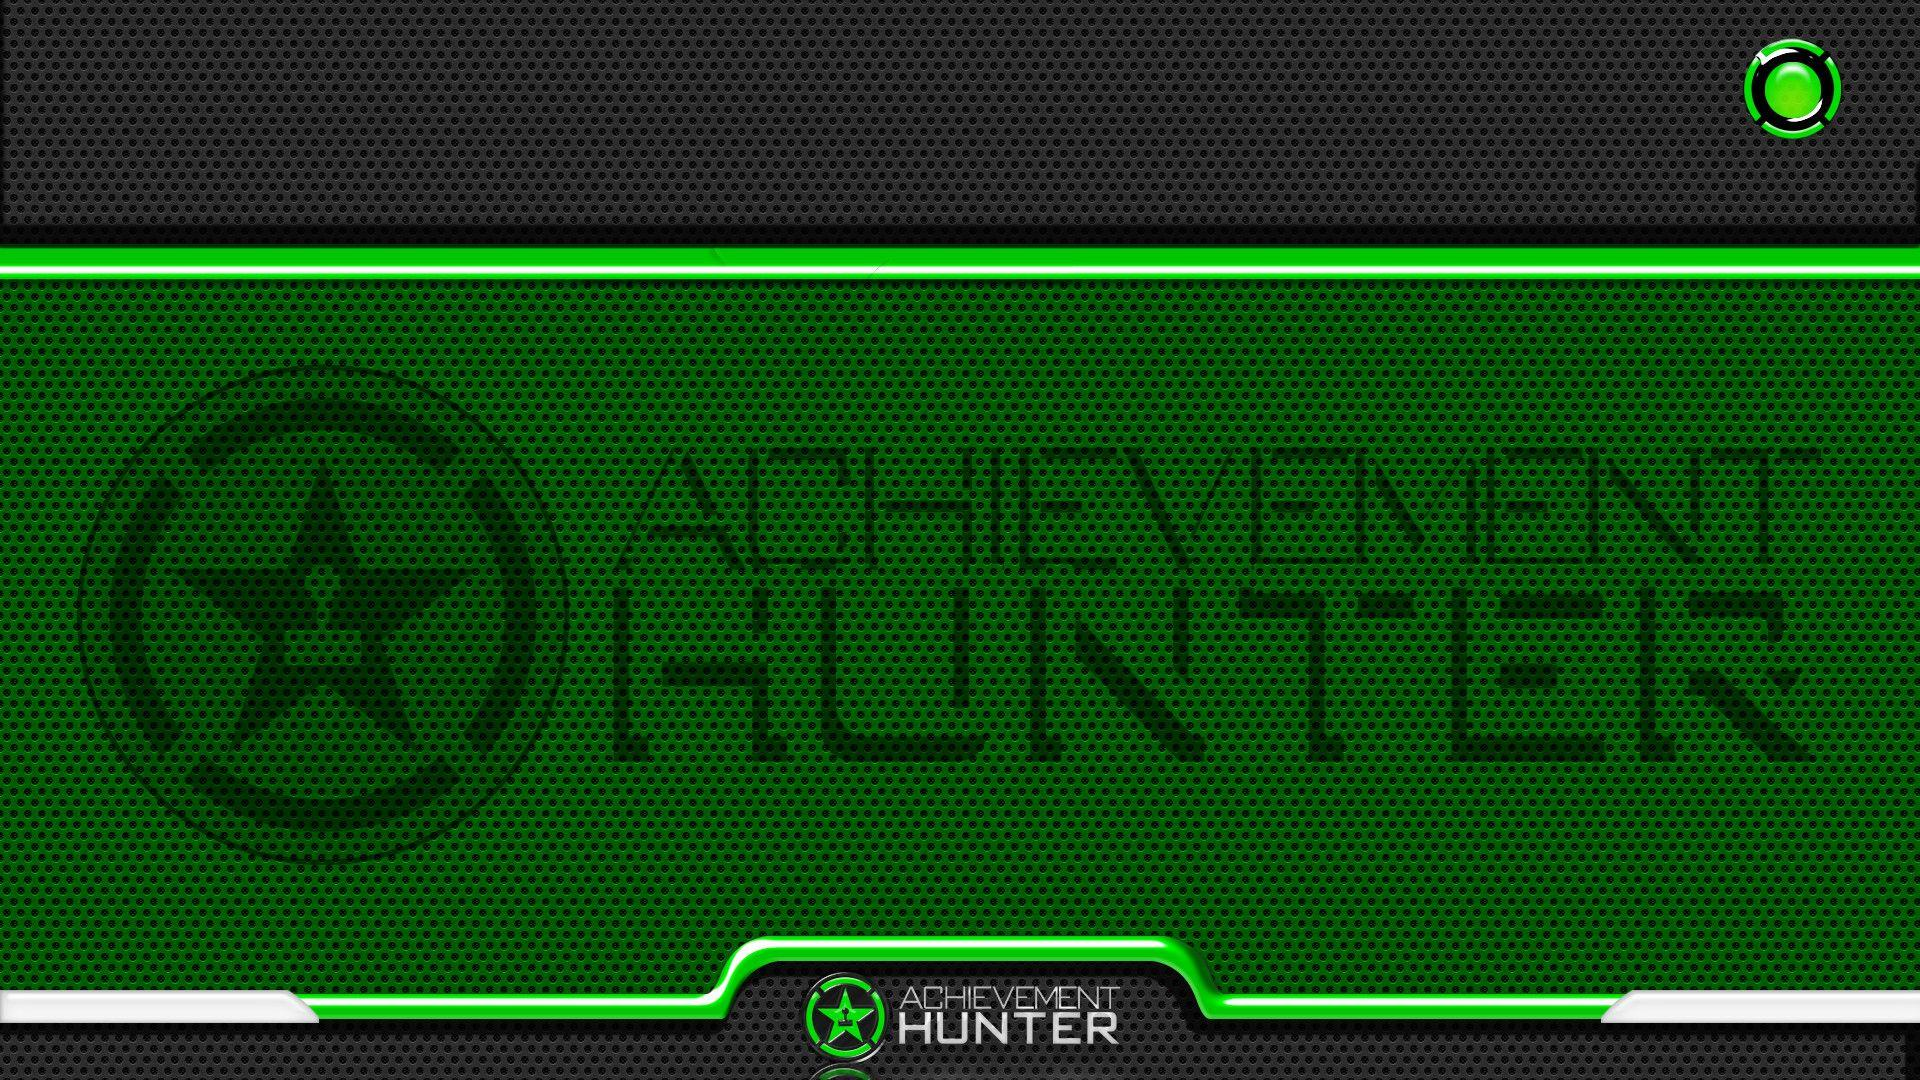 Achievment Hunter Reddit How To Conquer With Endless Thread Artomix C1 Achievement Iphone Wallpapers Tumblr Wallpaper Cave